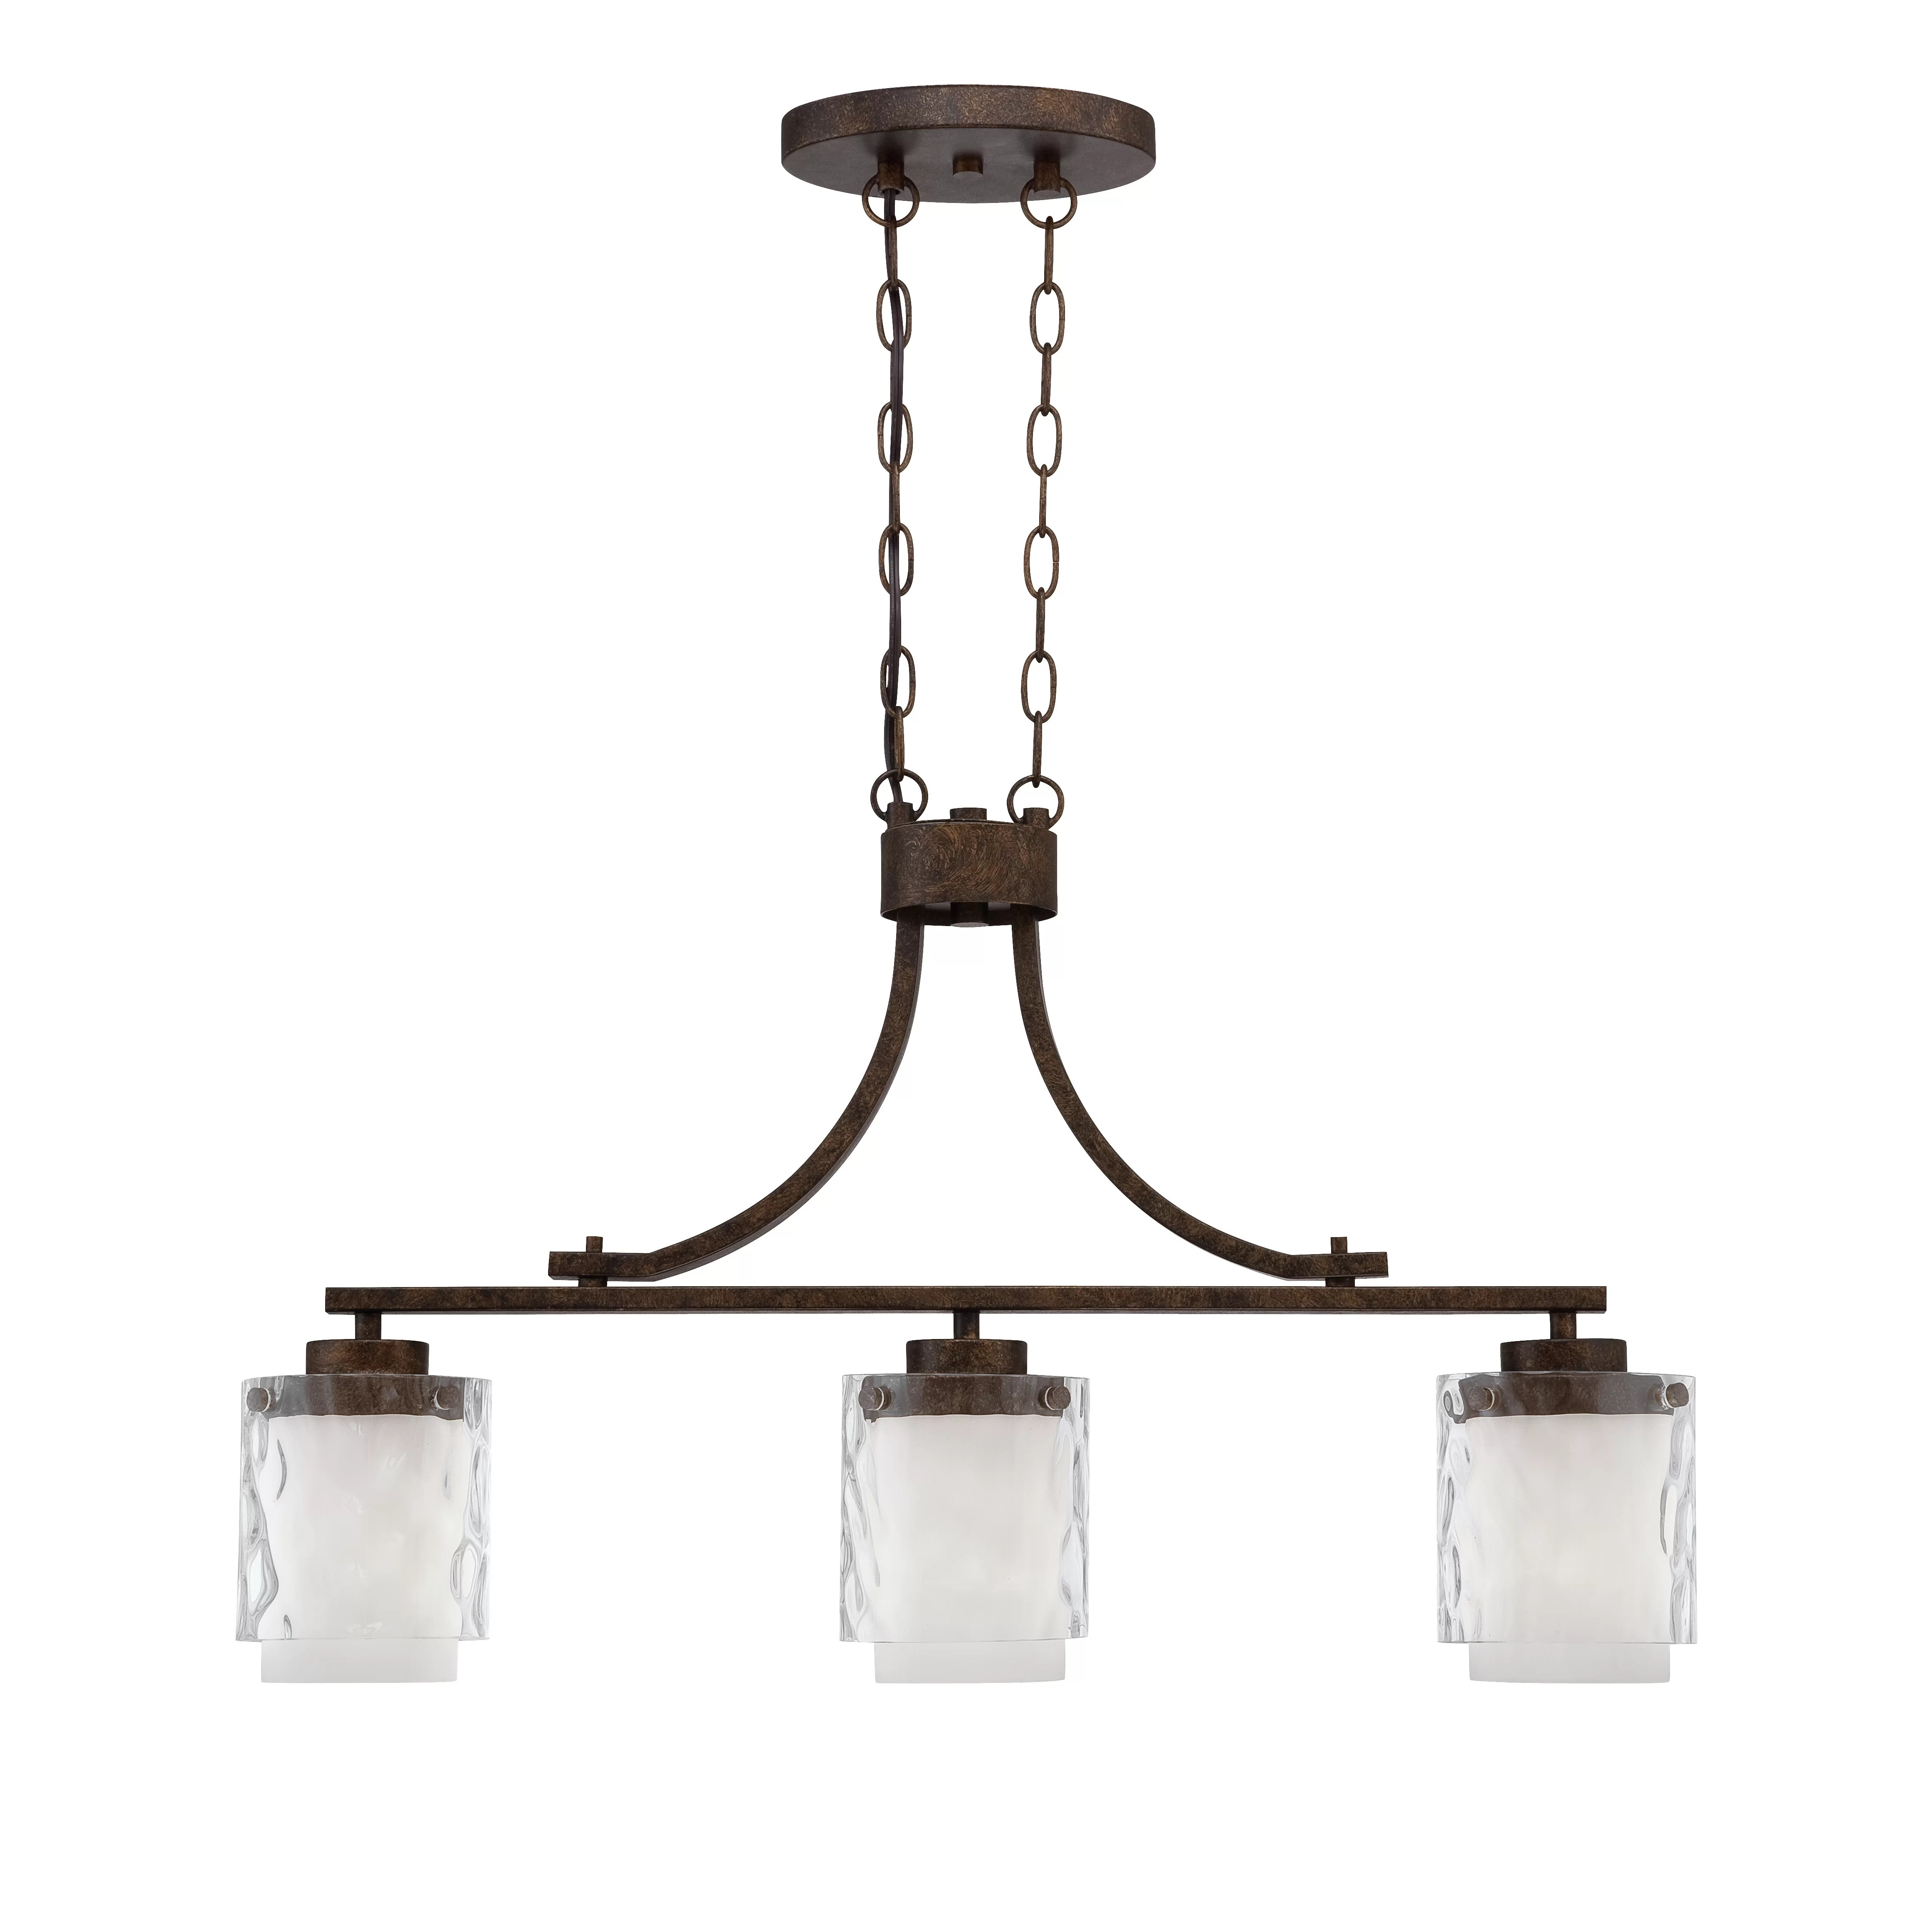 3 light kitchen island pendant cabinets for sale craigslist jeremiah kenswick and reviews